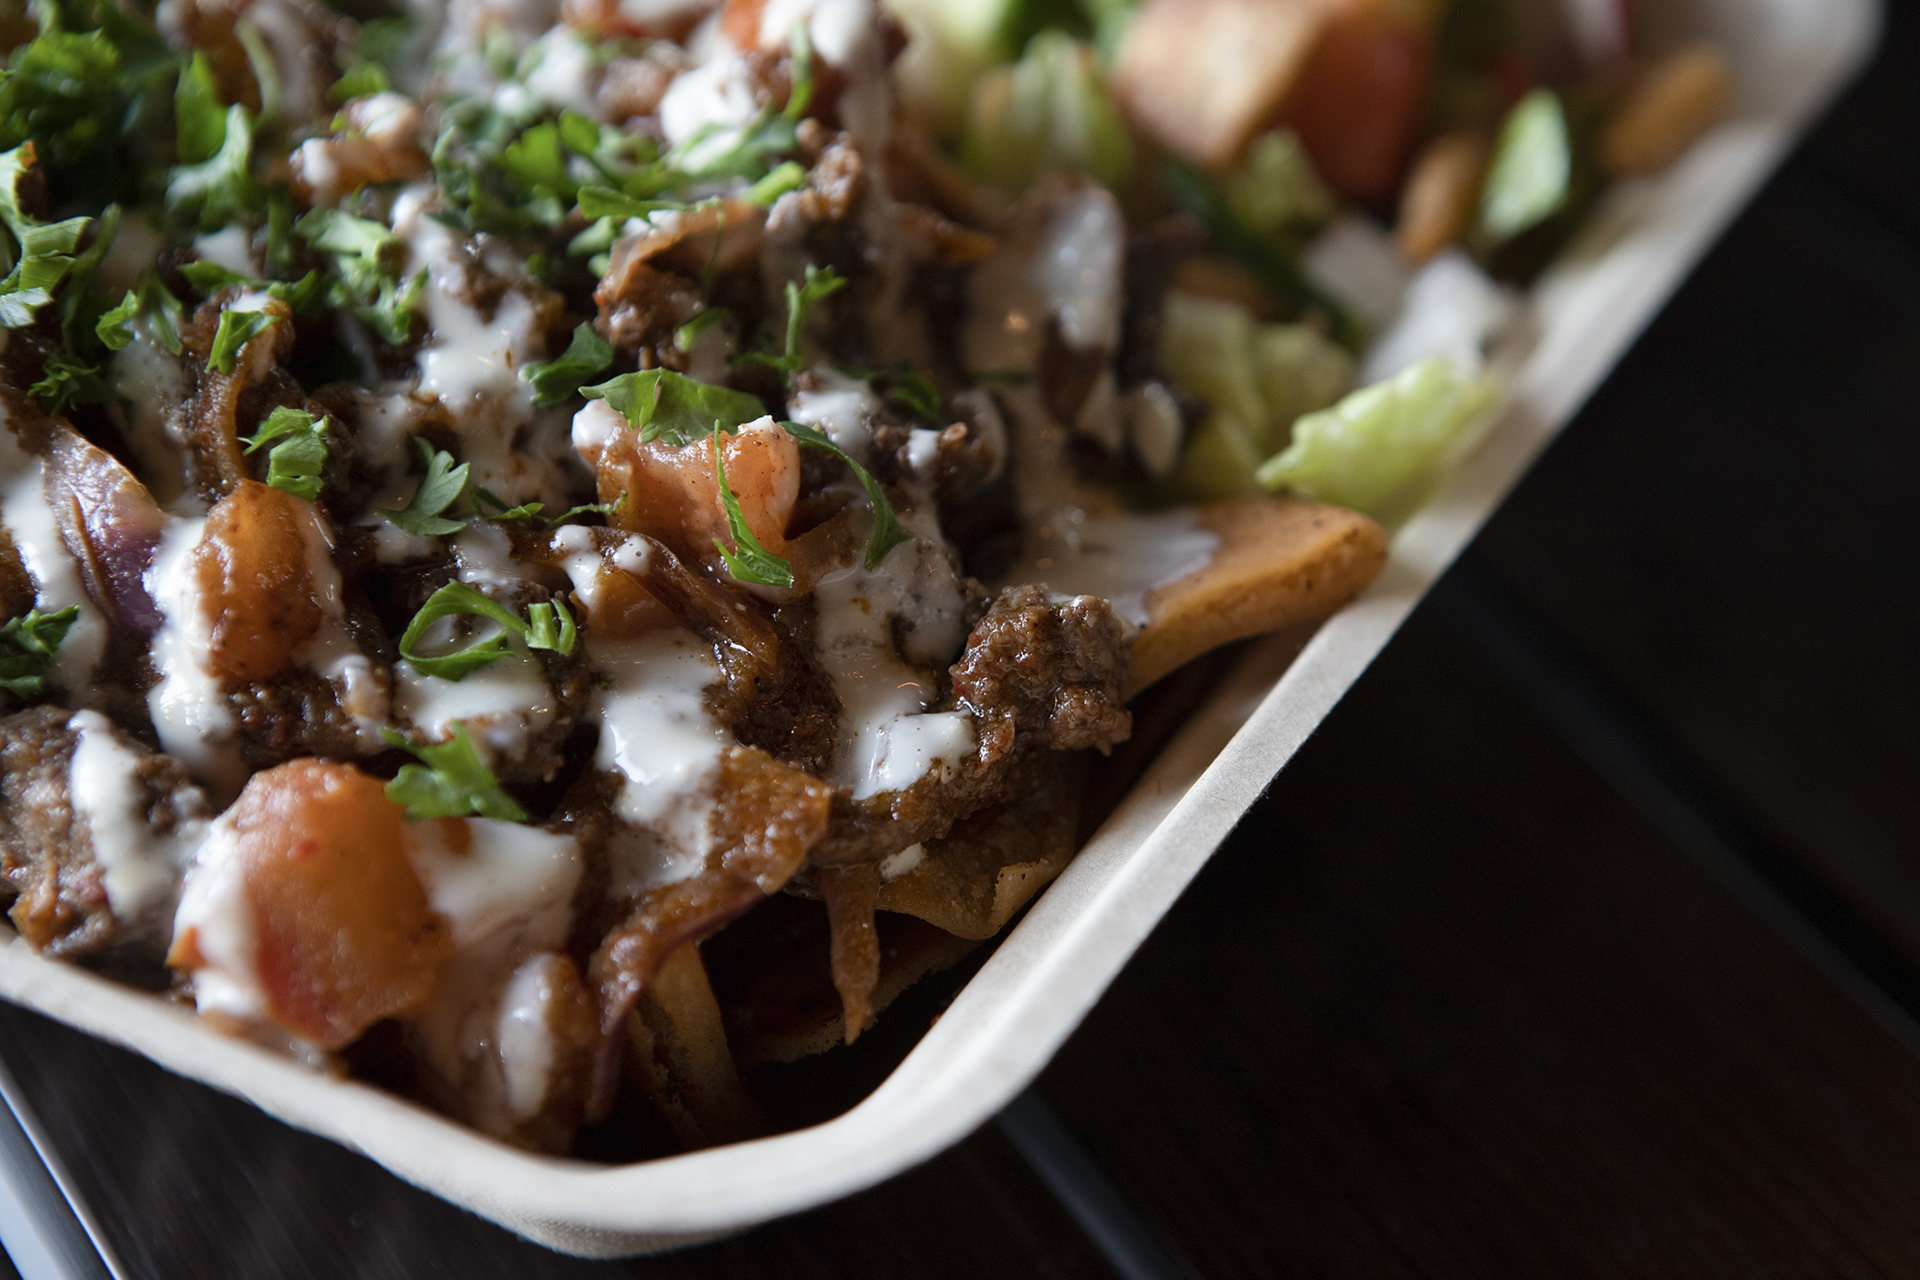 Beef Shawarma Nachos are pictured up close on top of a black metallic table in the hummus labs restaurant. The plate is topped with tahini sauce and accompanied by a side of salad and tzatziki.